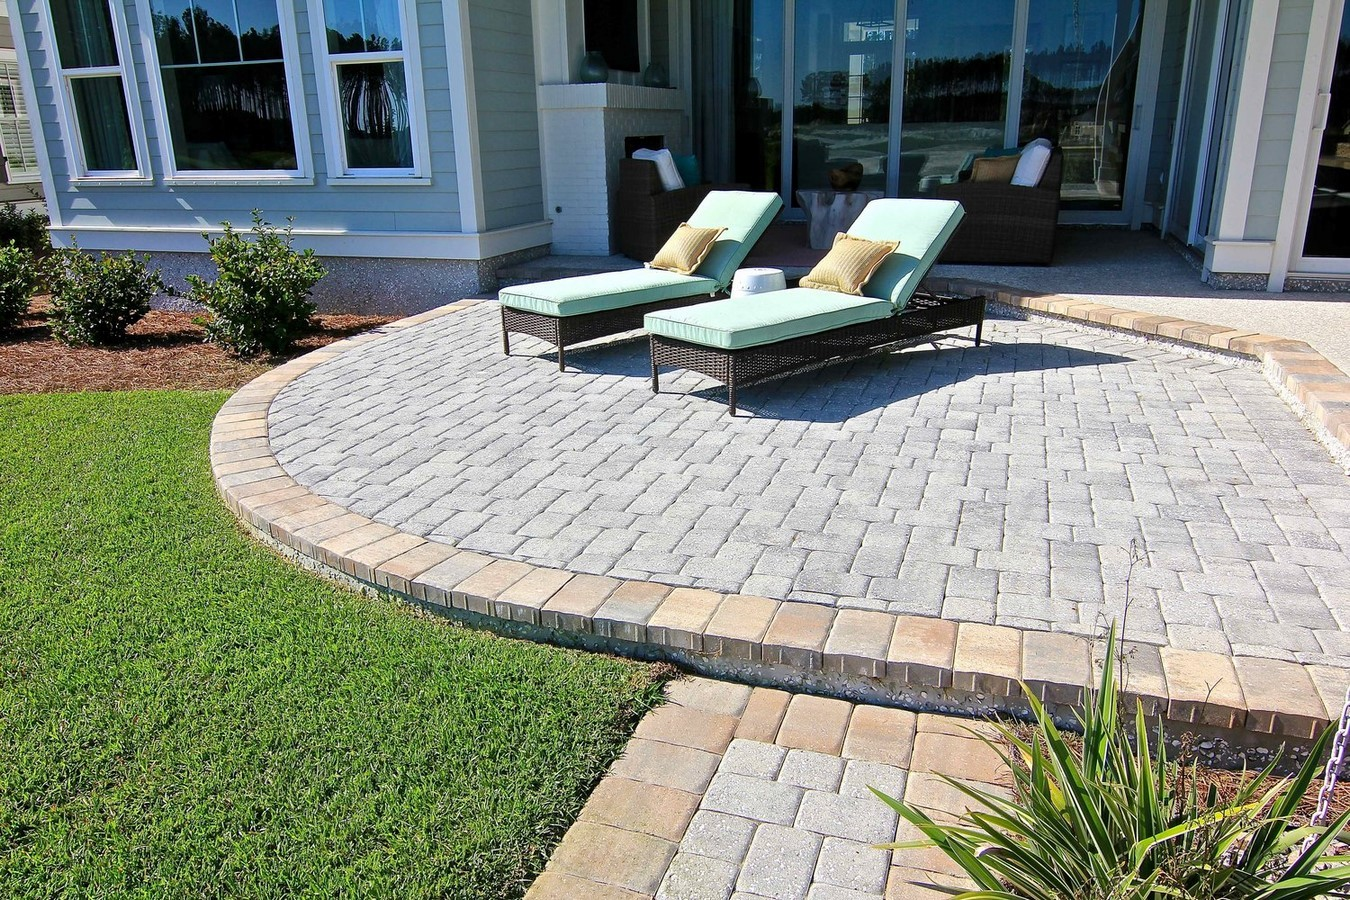 50 Ideas and Tips for Landscaping - Sheet39